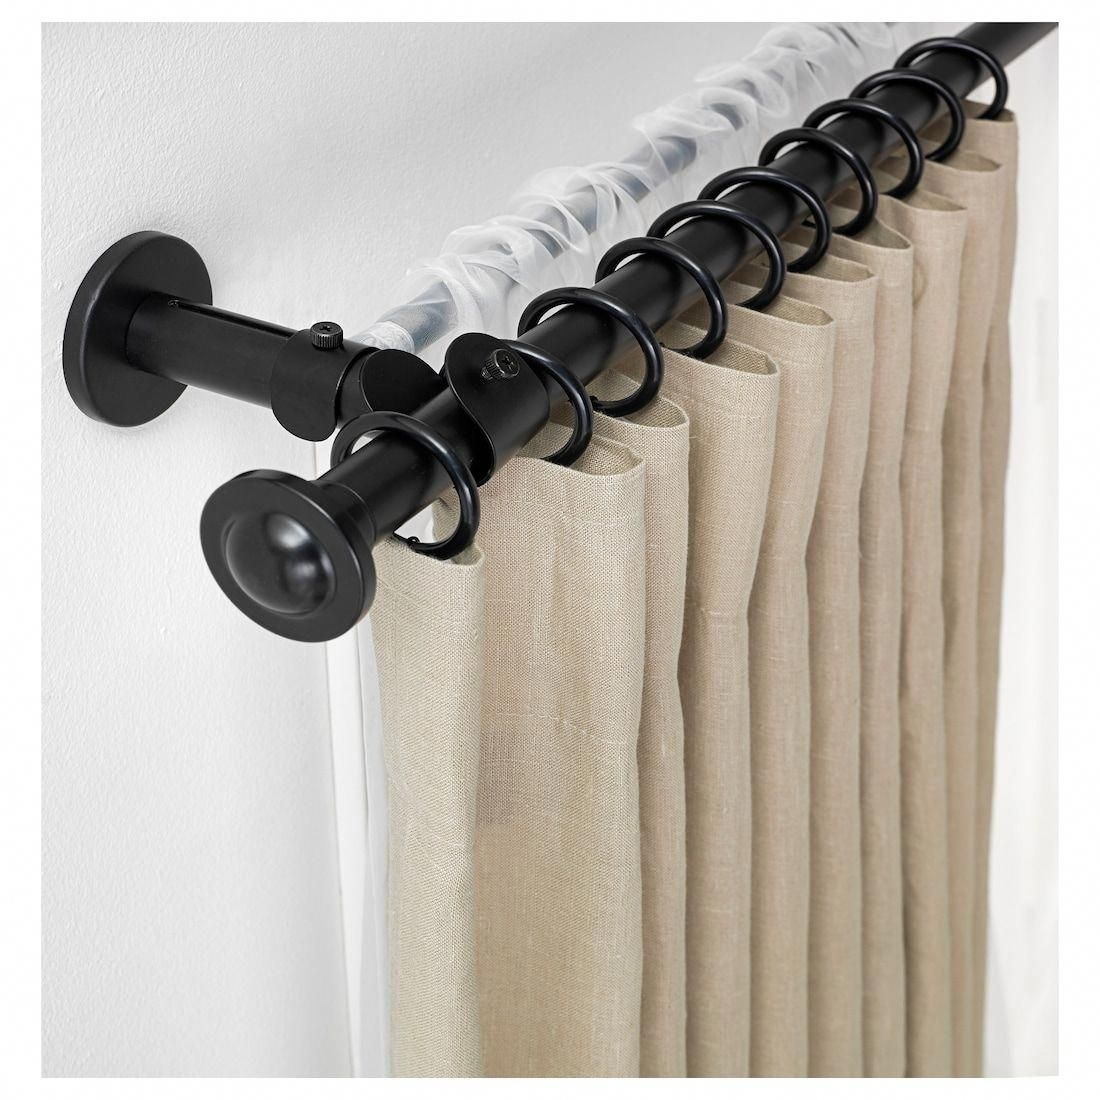 Storslagen Double Curtain Rod Set Black 47 1 4 82 5 8 Ikea In 2020 Double Curtain Rod Set Double Rod Curtains Double Curtains